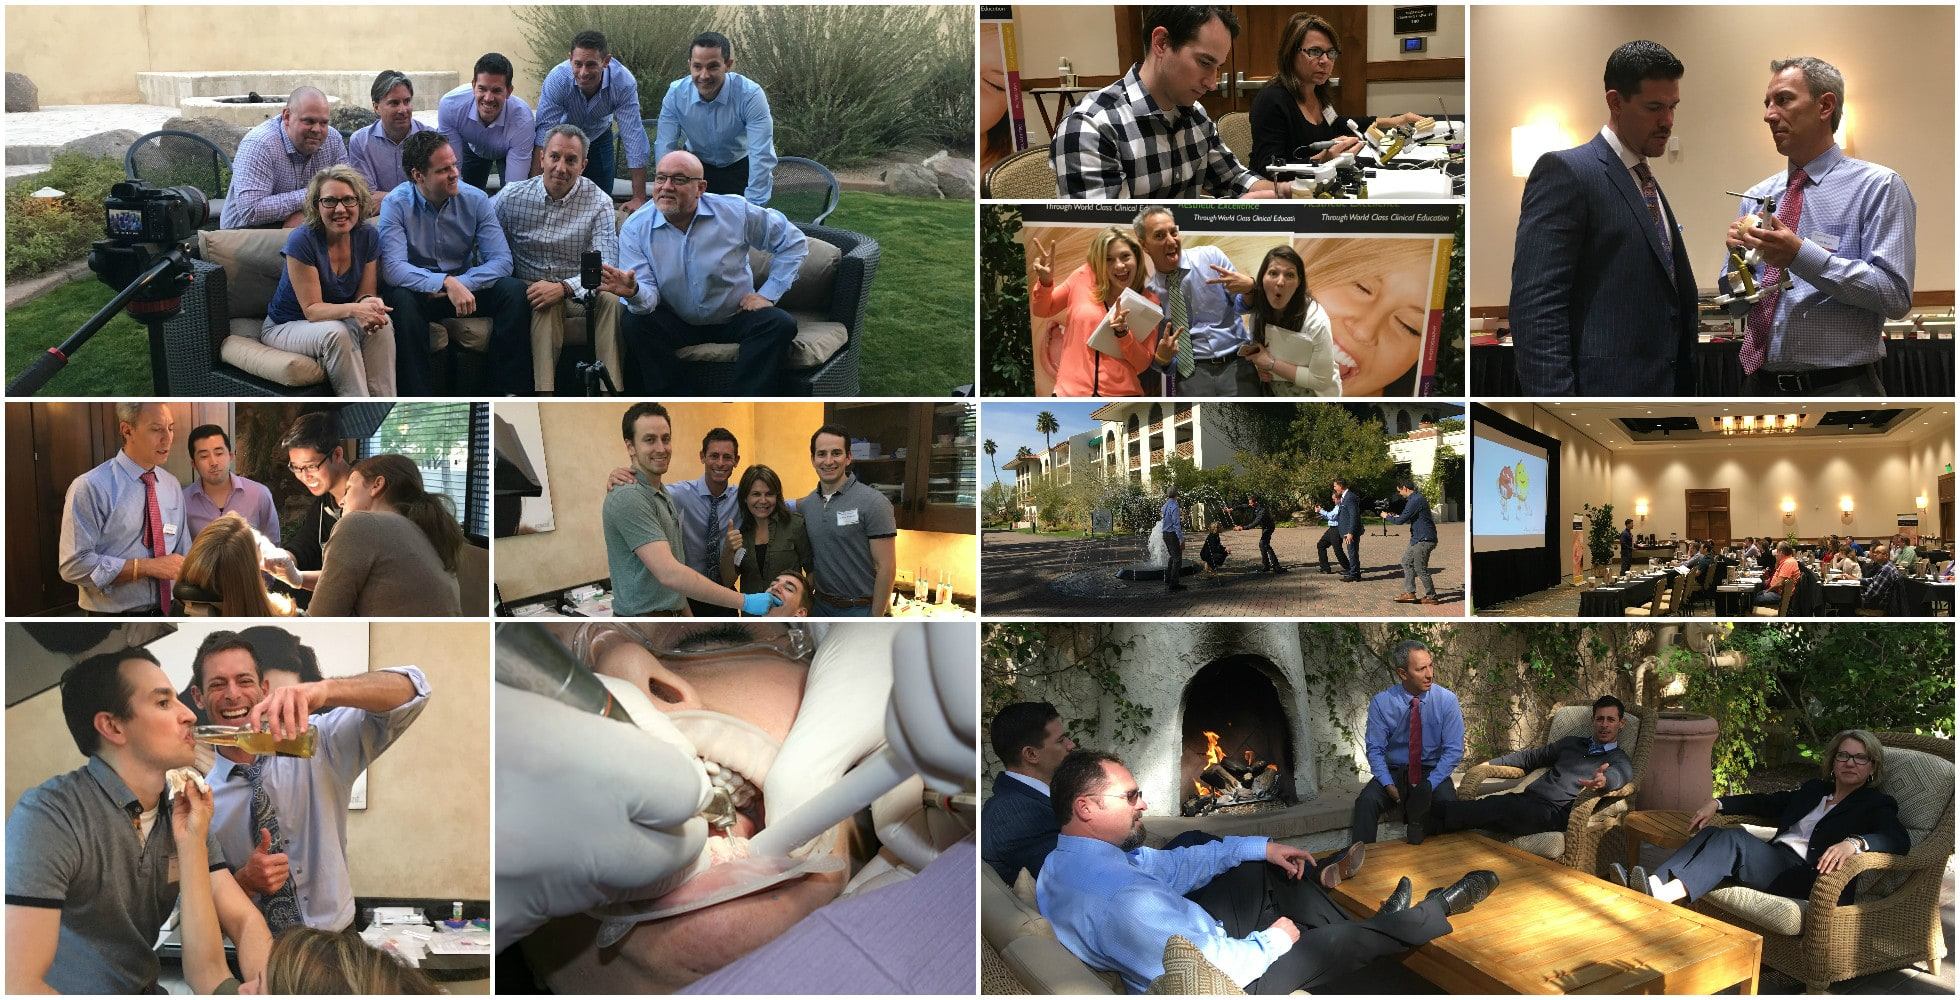 Dental Education Collage of Educators and Instructors Enjoying Learning